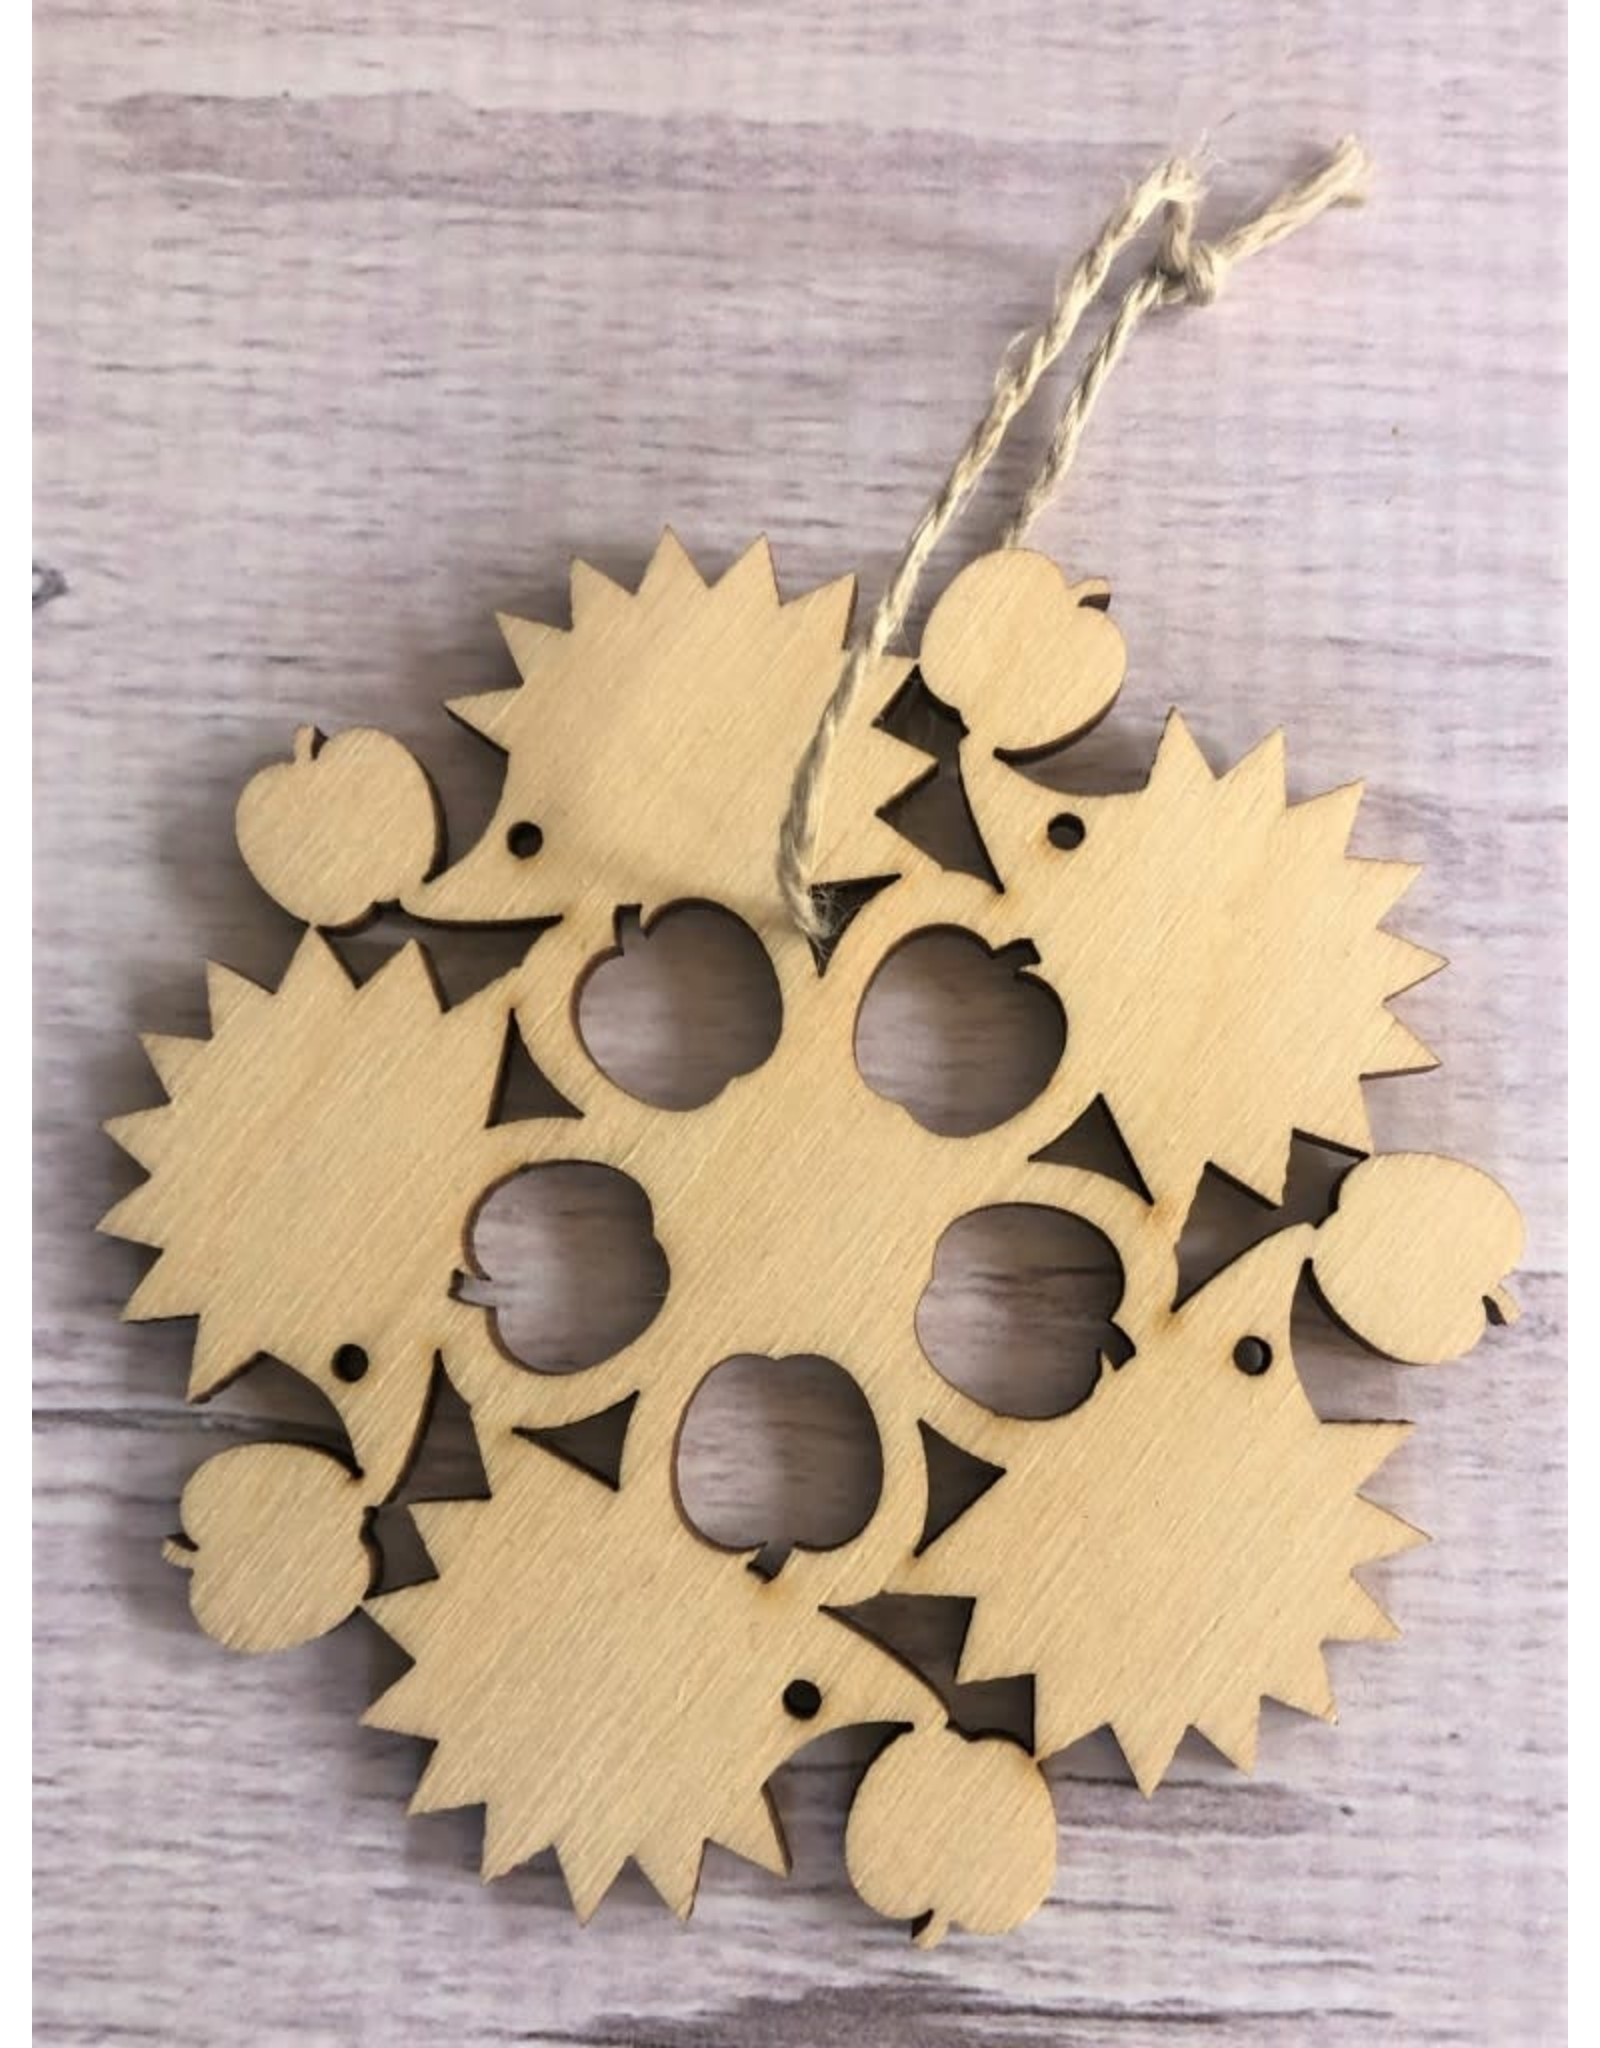 Birch Hedgehog Snowflake Ornament